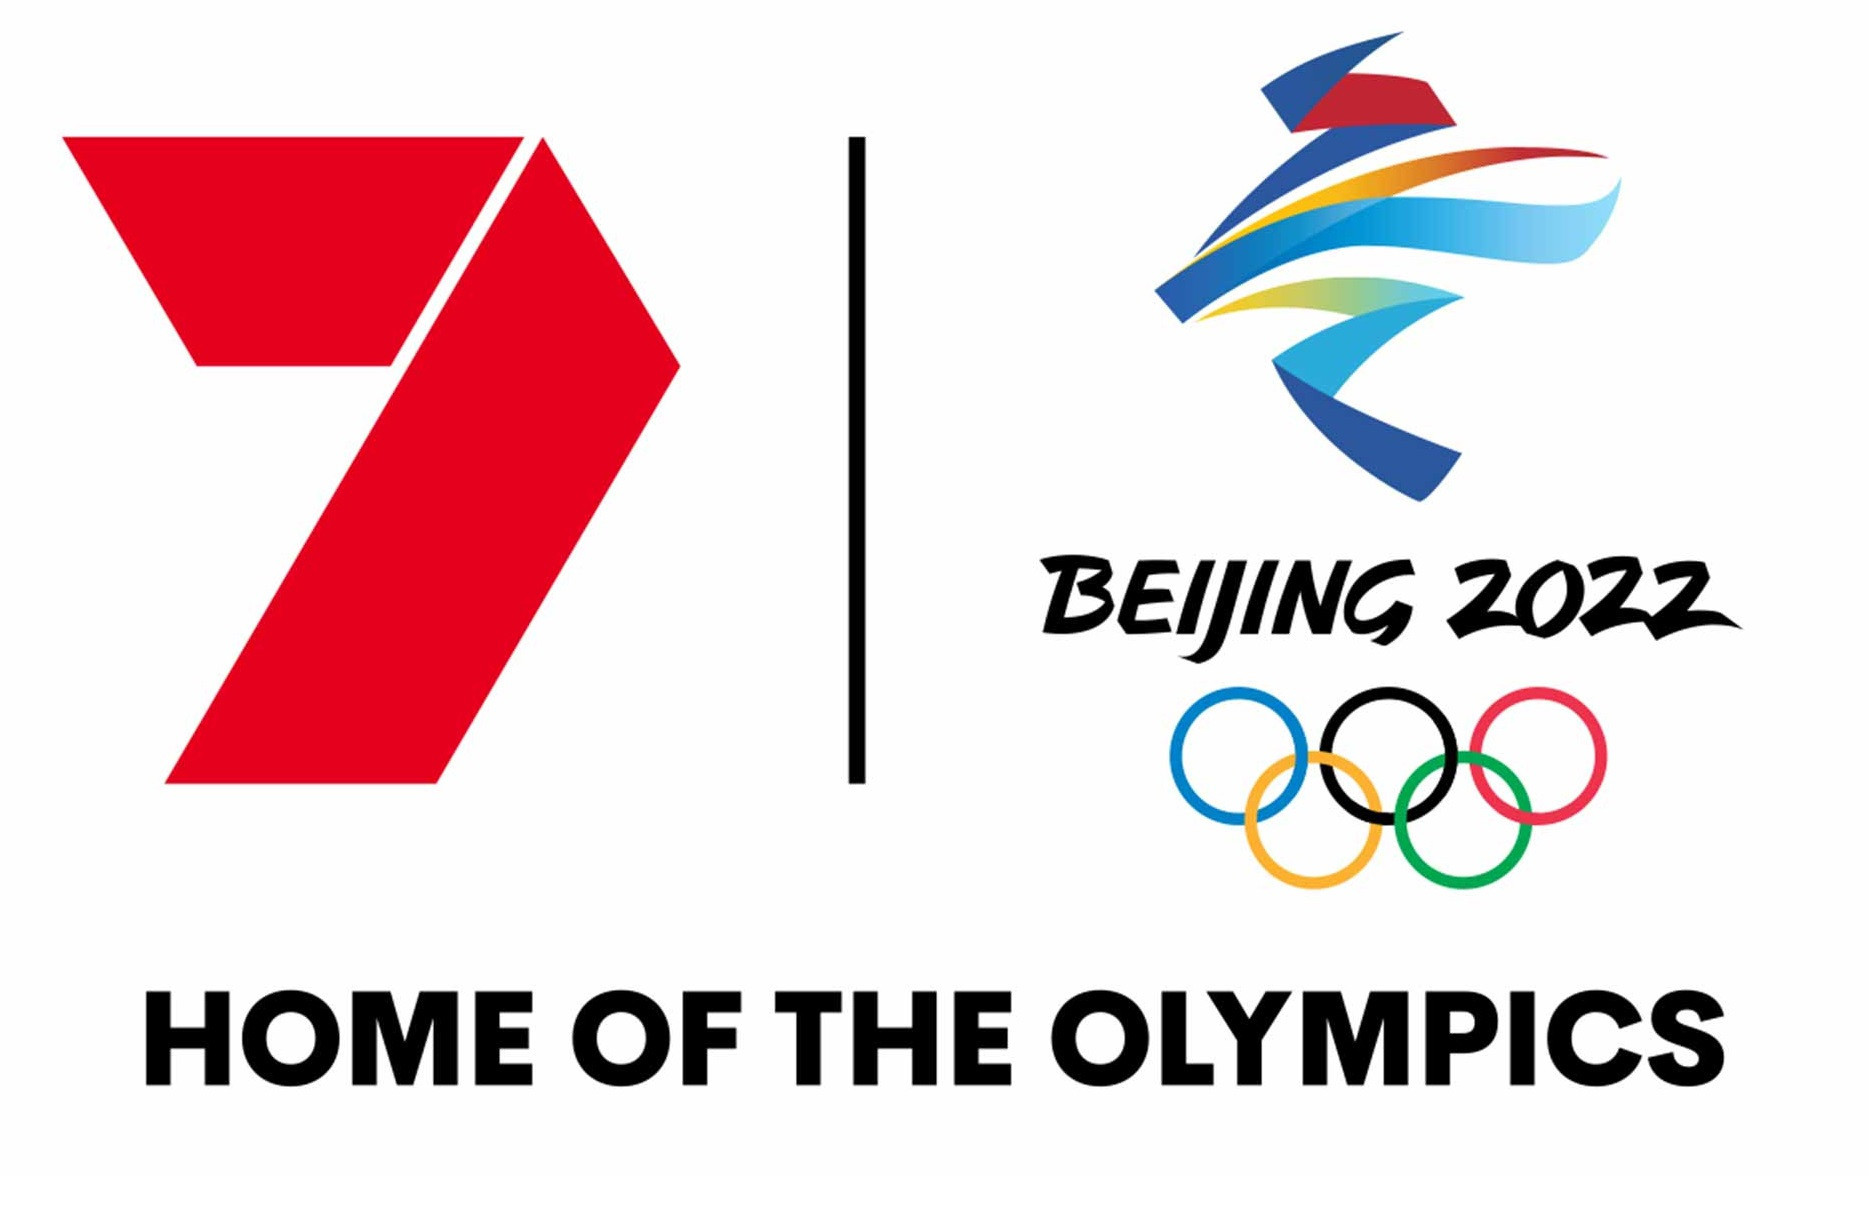 Seven Network secures Australian TV rights for Beijing 2022 as IOC extends agreement